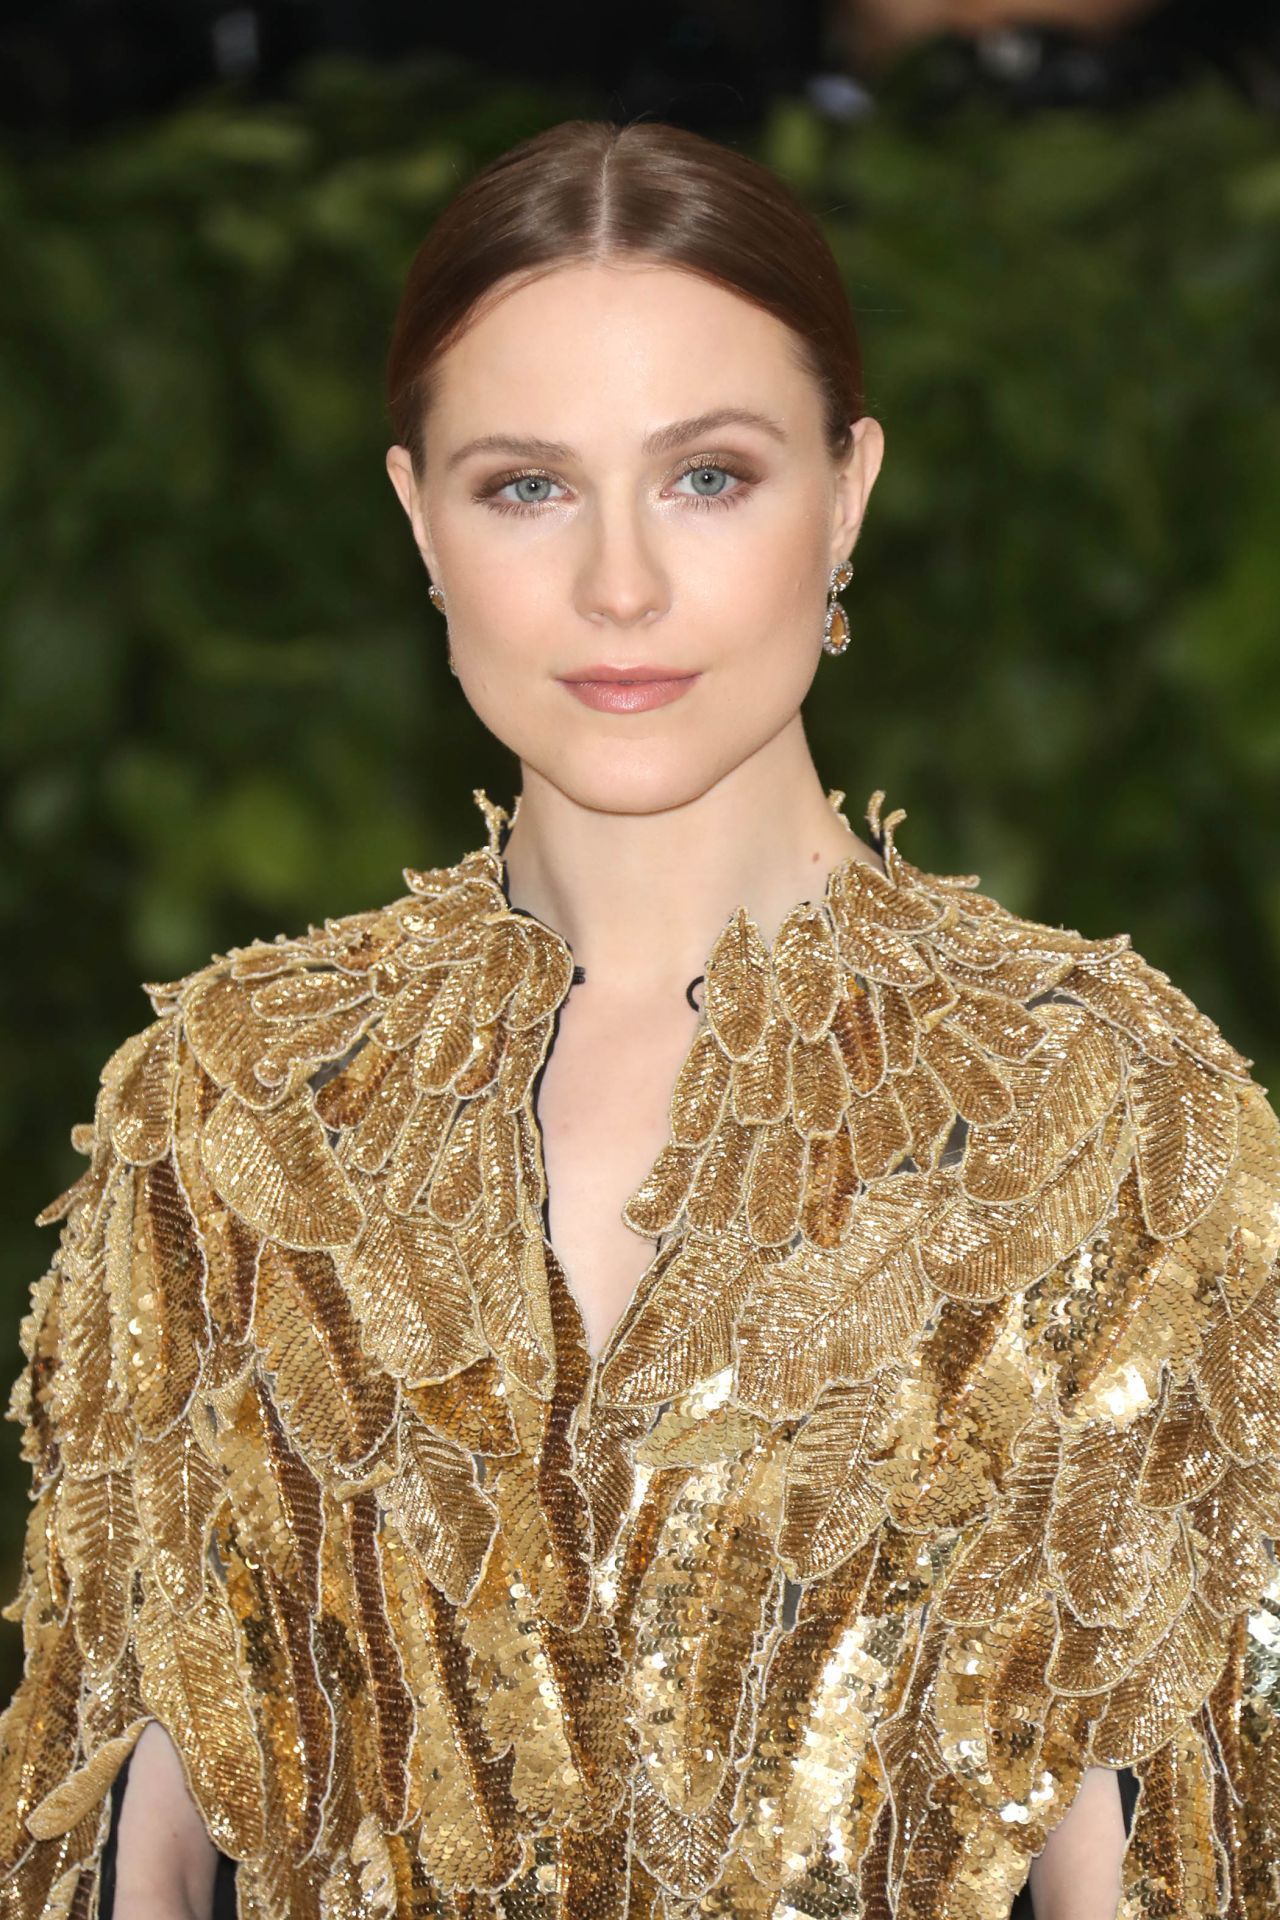 Evan Rachel Wood – MET Gala 2018 Evan Rachel Wood